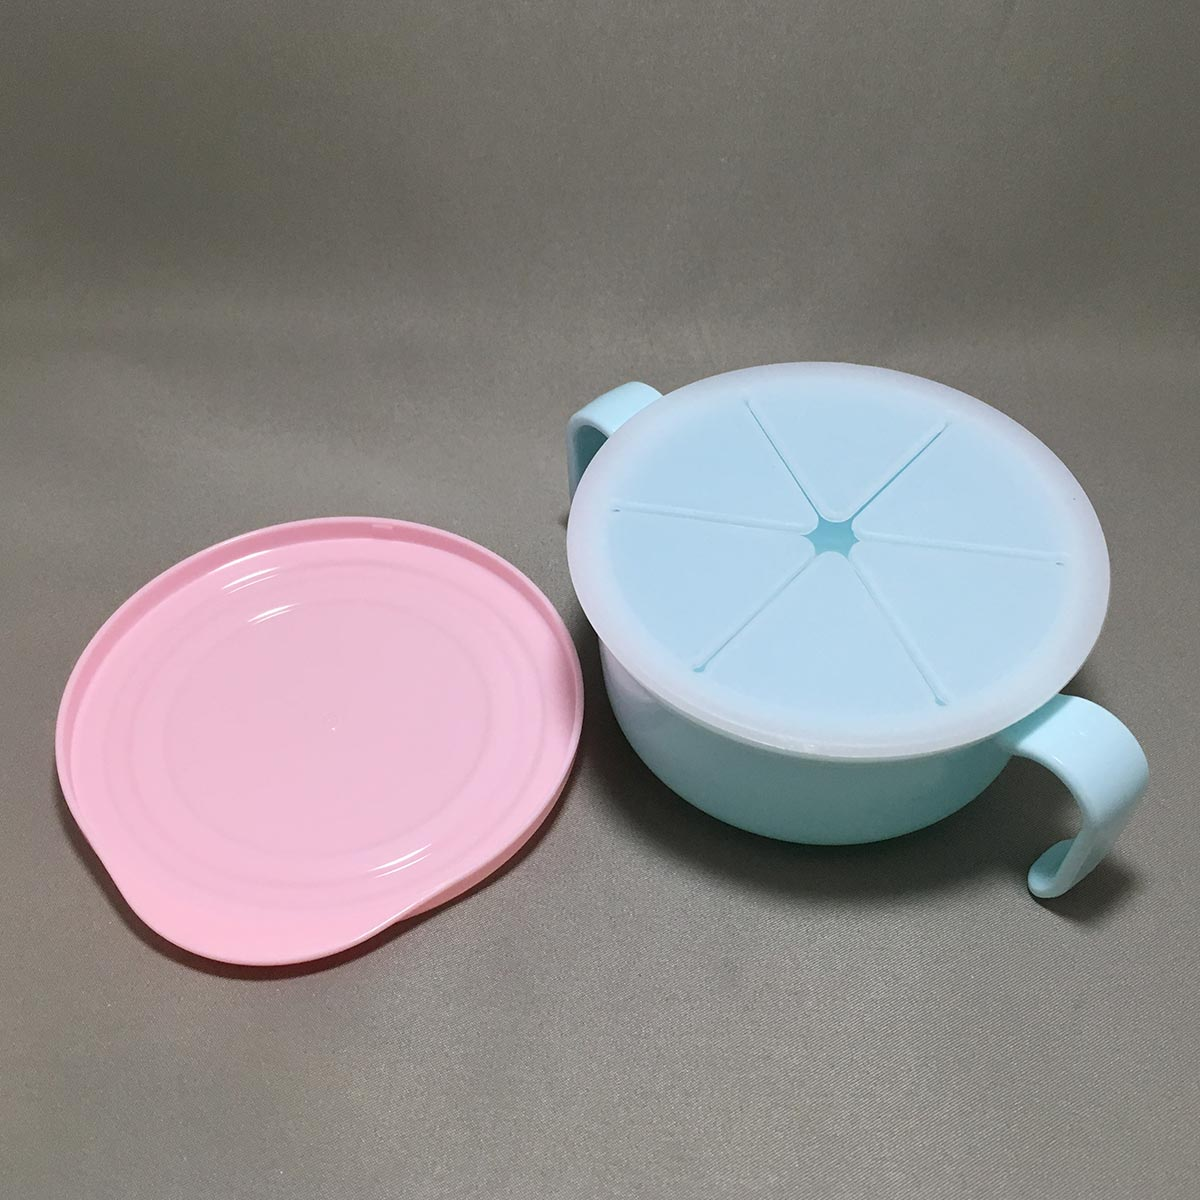 Child Snack Cup - cup and lids